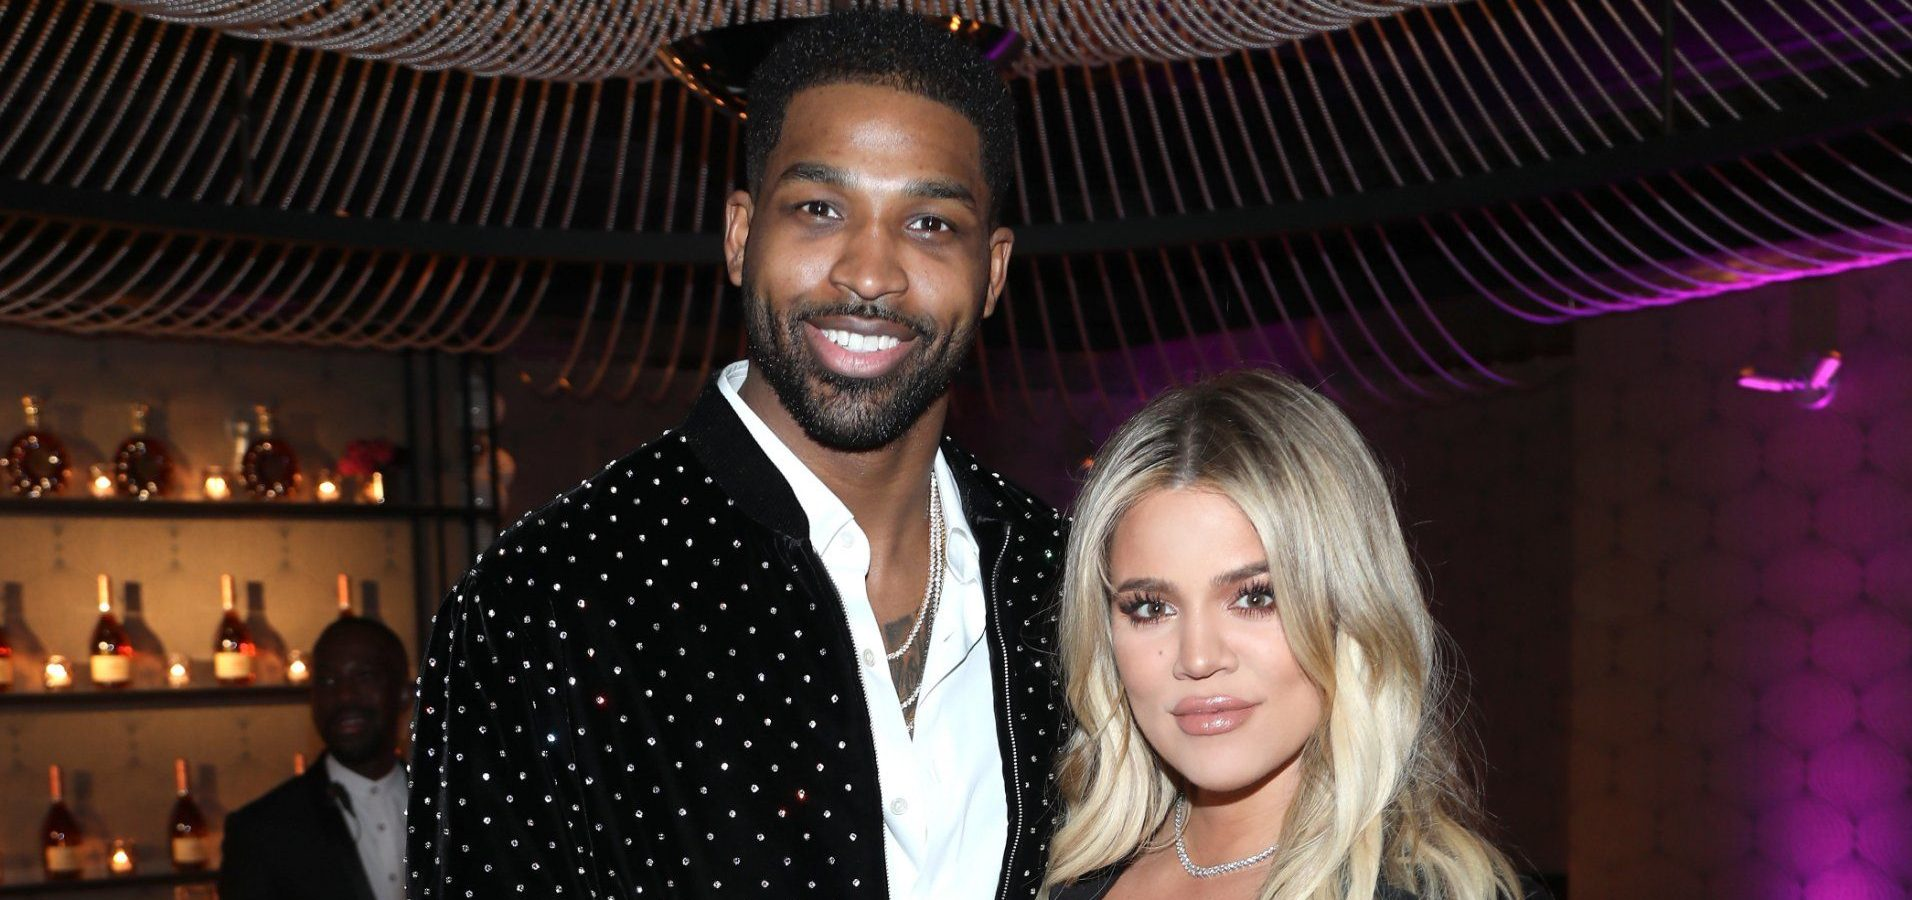 Khloe Kardashian brushes off Tristan Thompson split rumours by supporting him at game